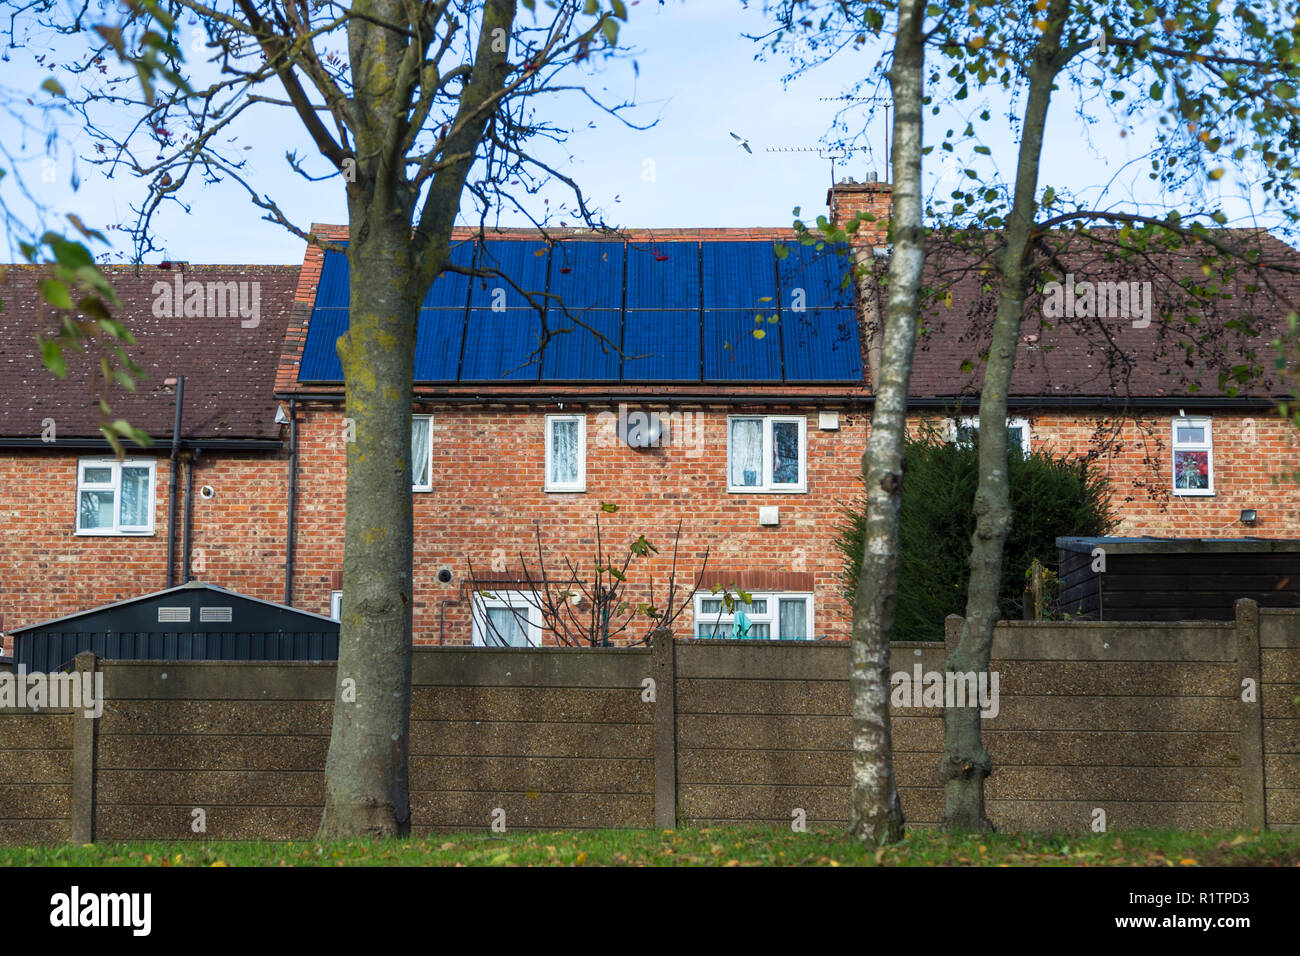 Brick house roof covered with solar panels, uk - Stock Image